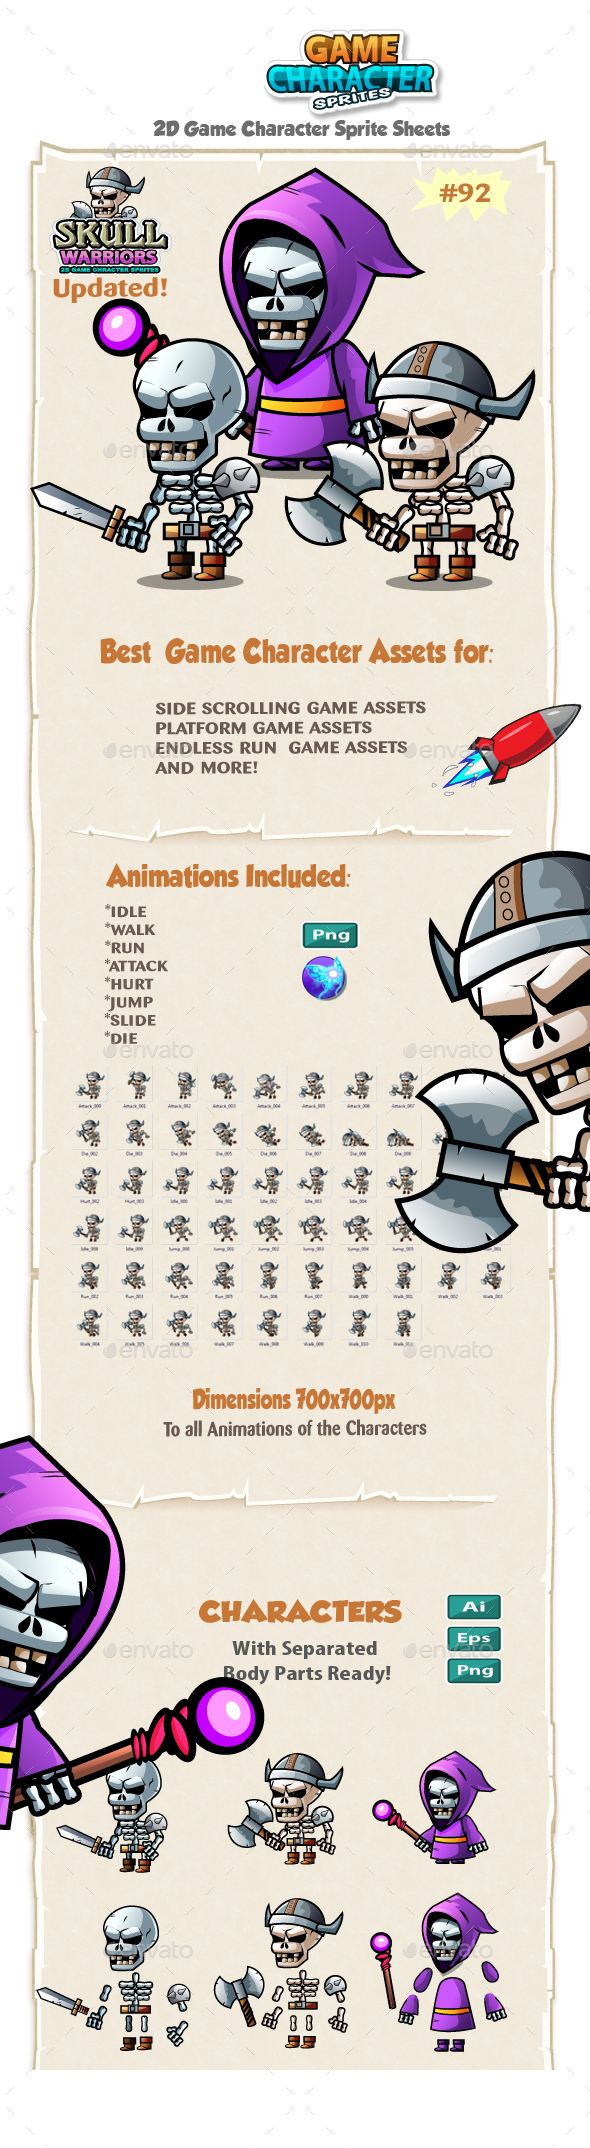 Skull Warriors 2D Game Character Sprites 92 - Sprites Game Assets